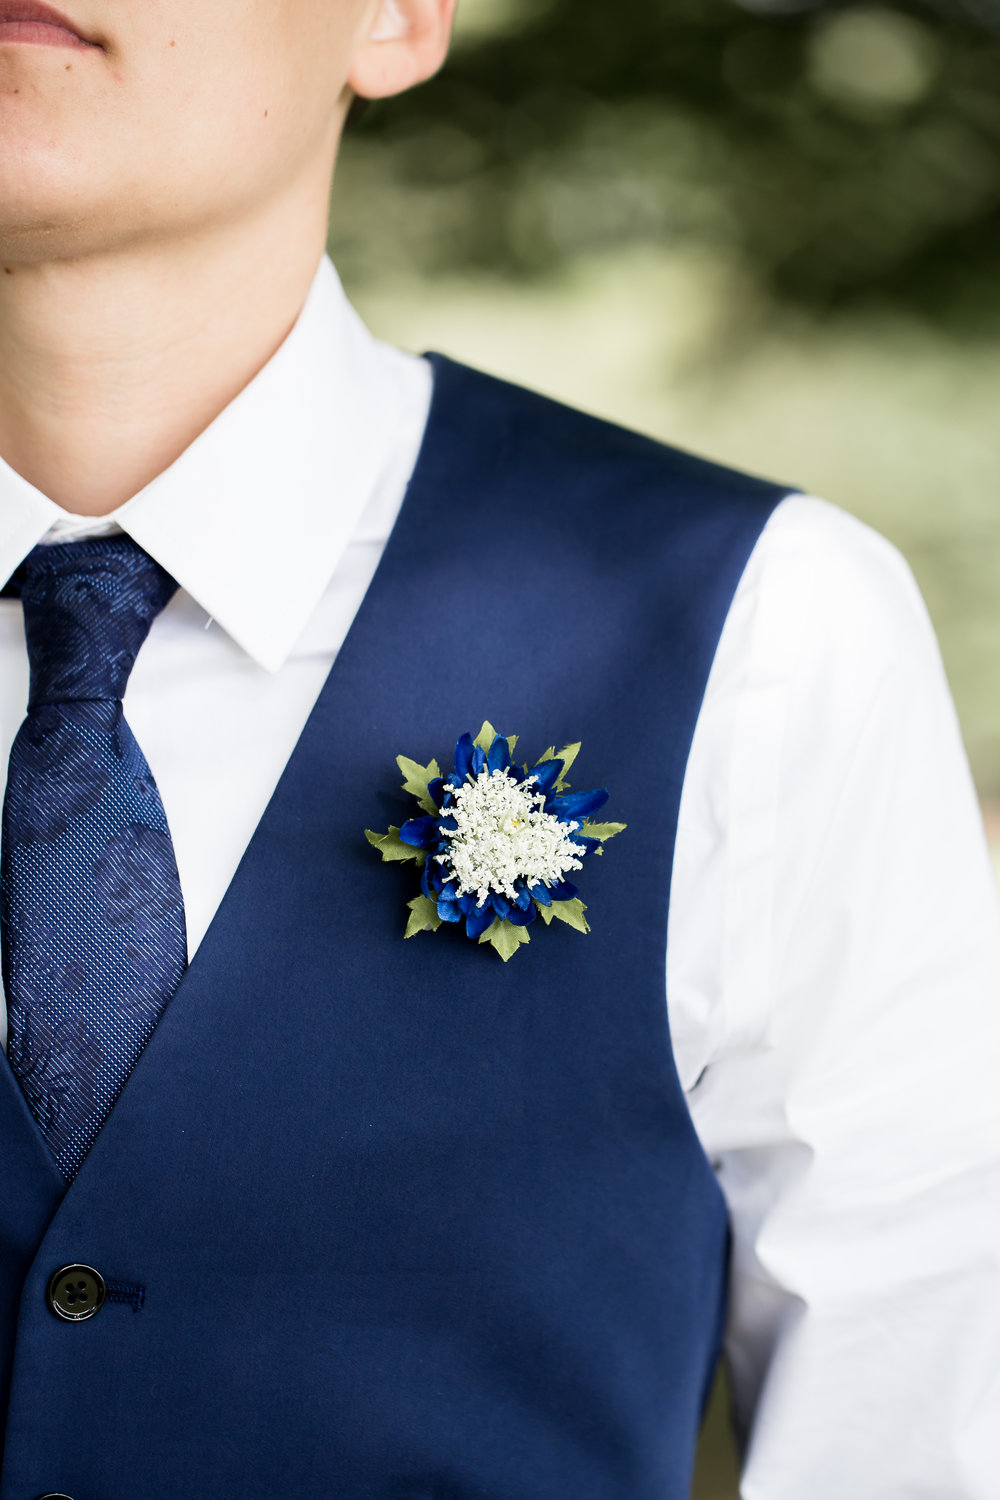 Gandjos_Tinko_BackSeatPhotography_backseatphoto83.JPG